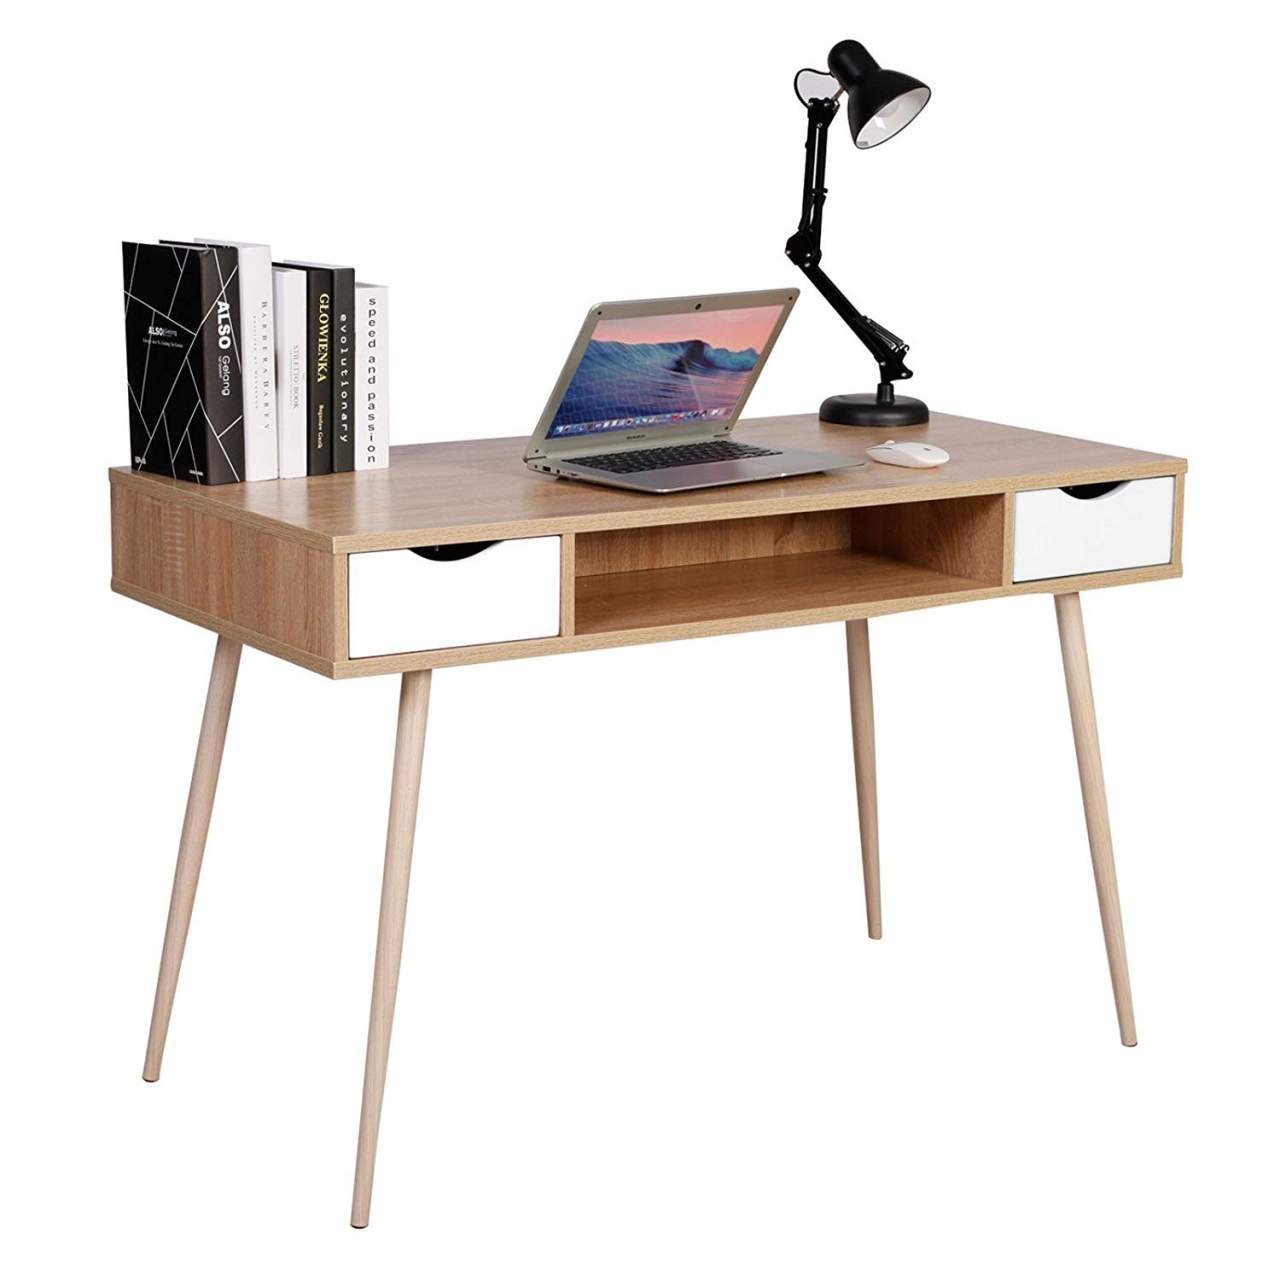 - Computer Table With Three Storage Options In Oak Woltu.eu